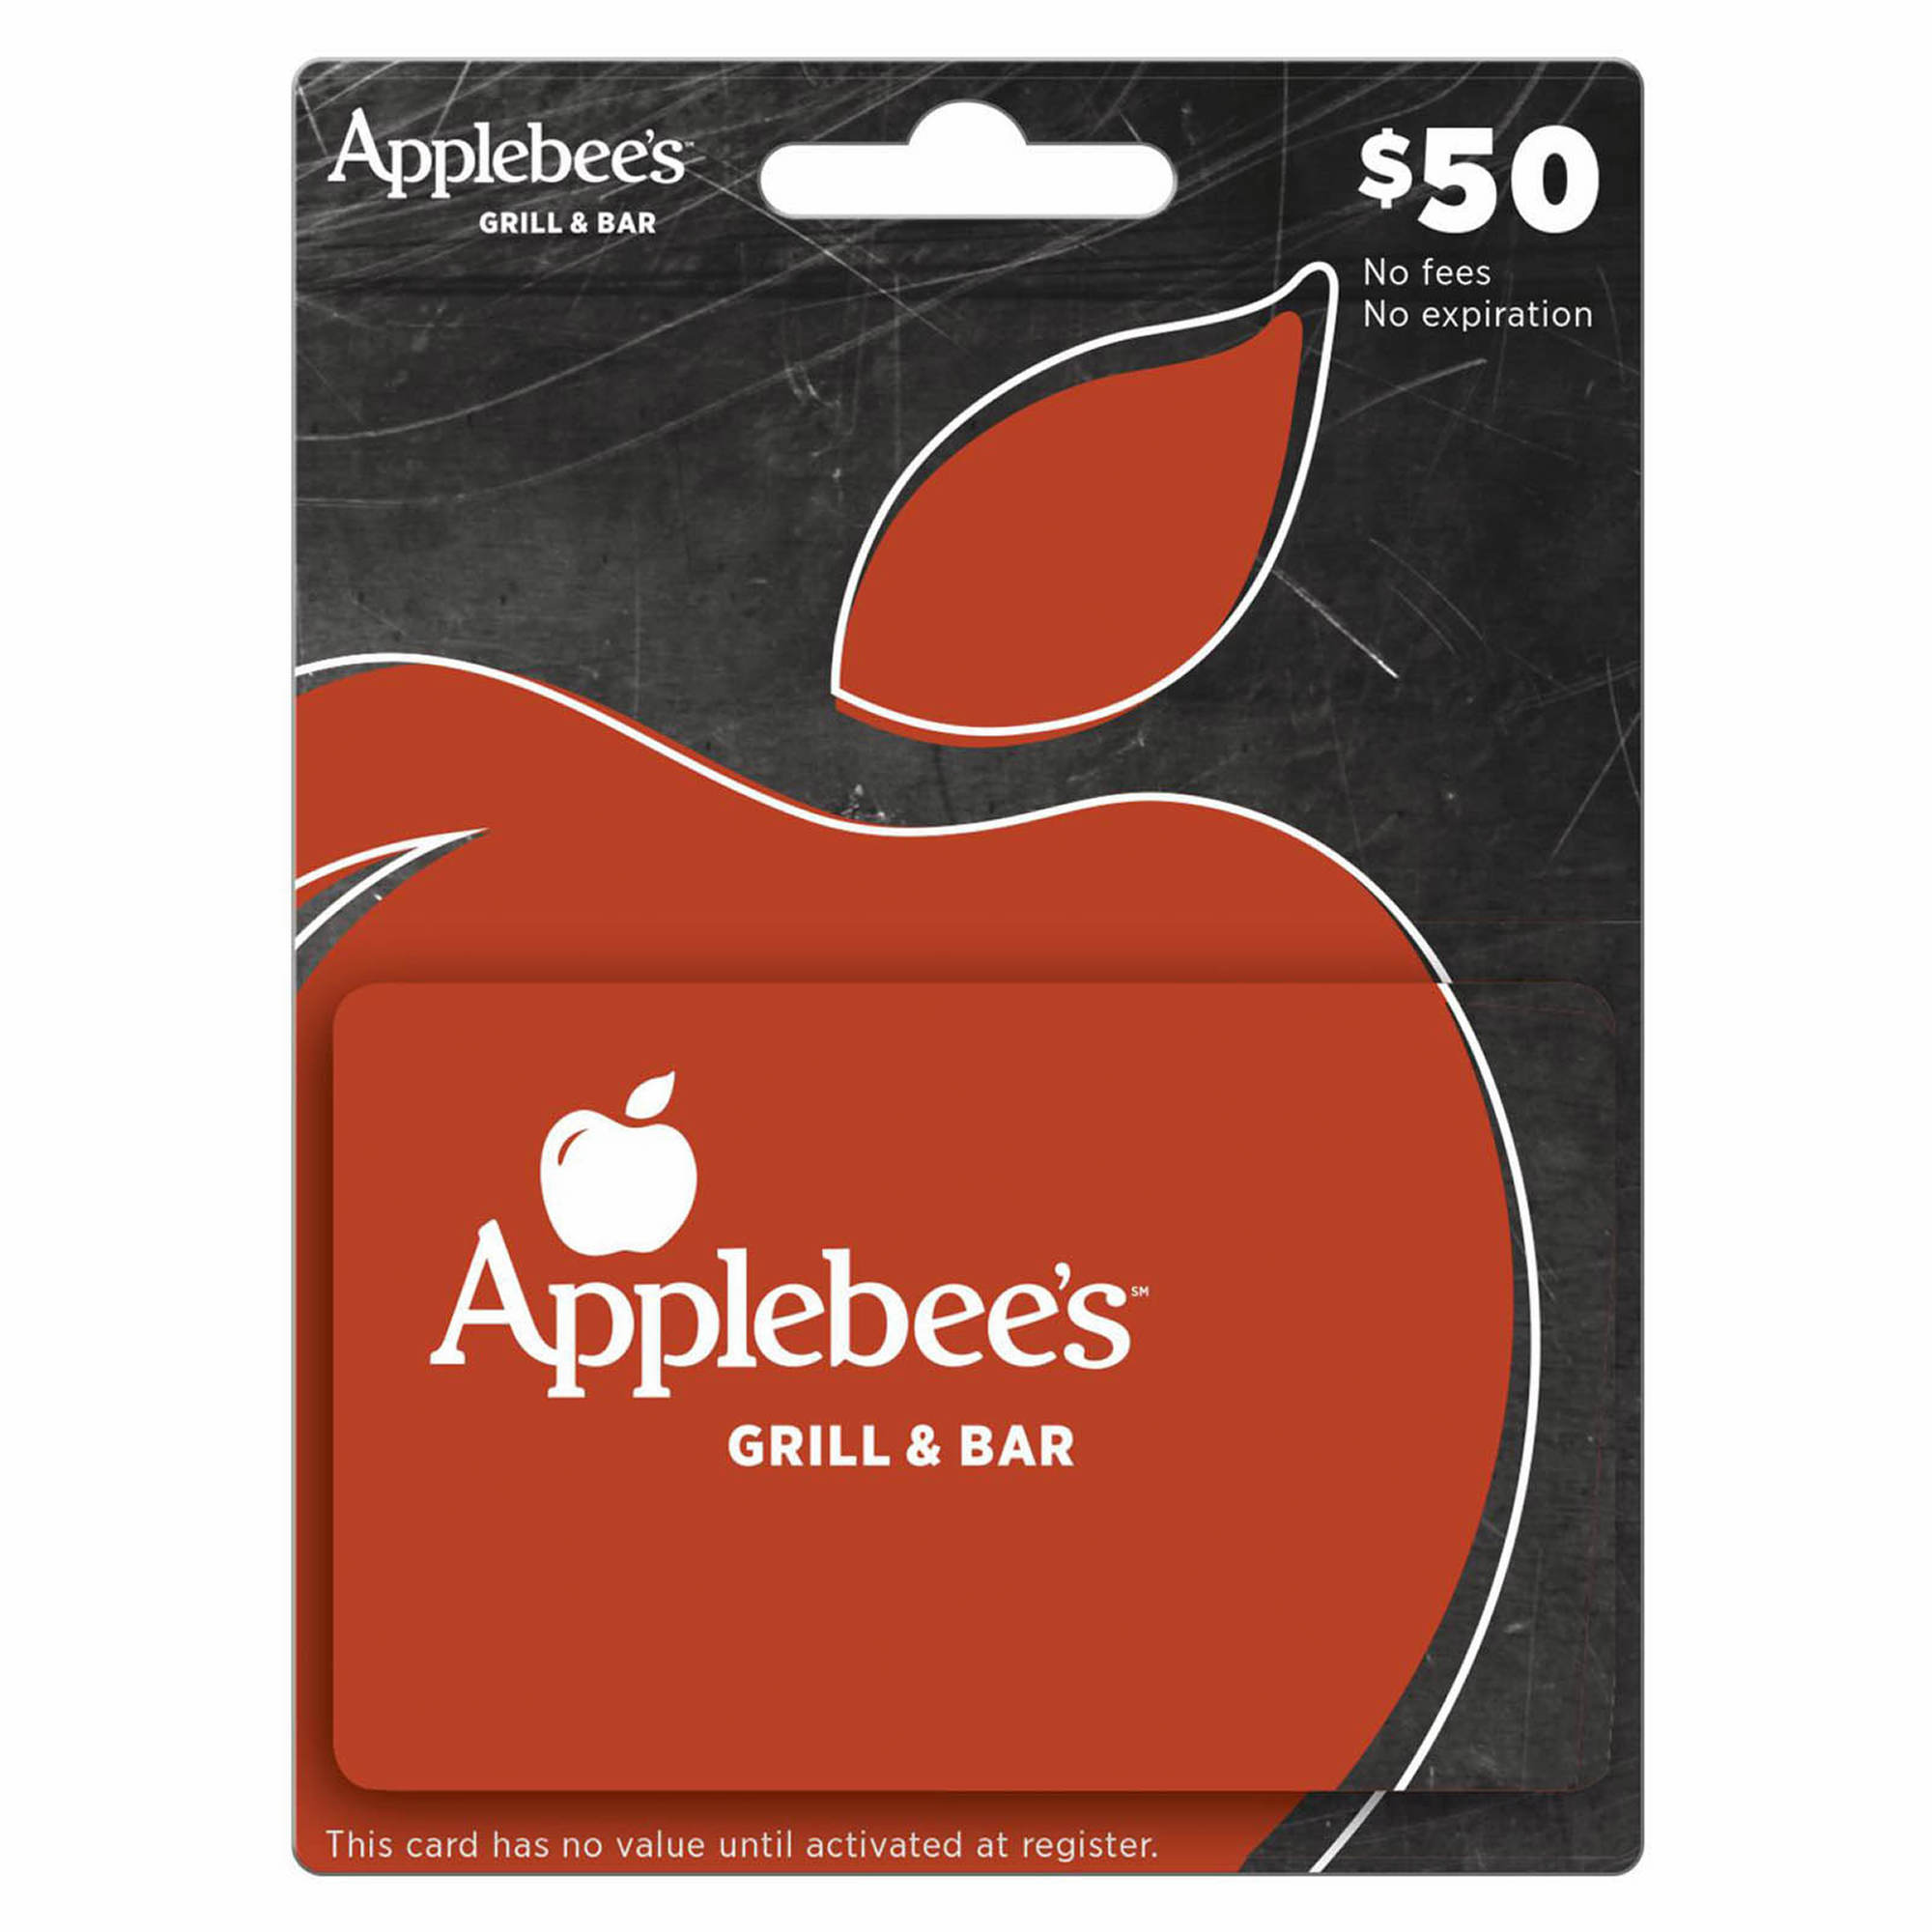 At Applebee's we want everyone to feel the love. That's why we're introducing an all new program that rewards our most loyal customers. Now you will receive credit for each dollar spent at participating Applebee's restaurants, which can be redeemed for reward items .